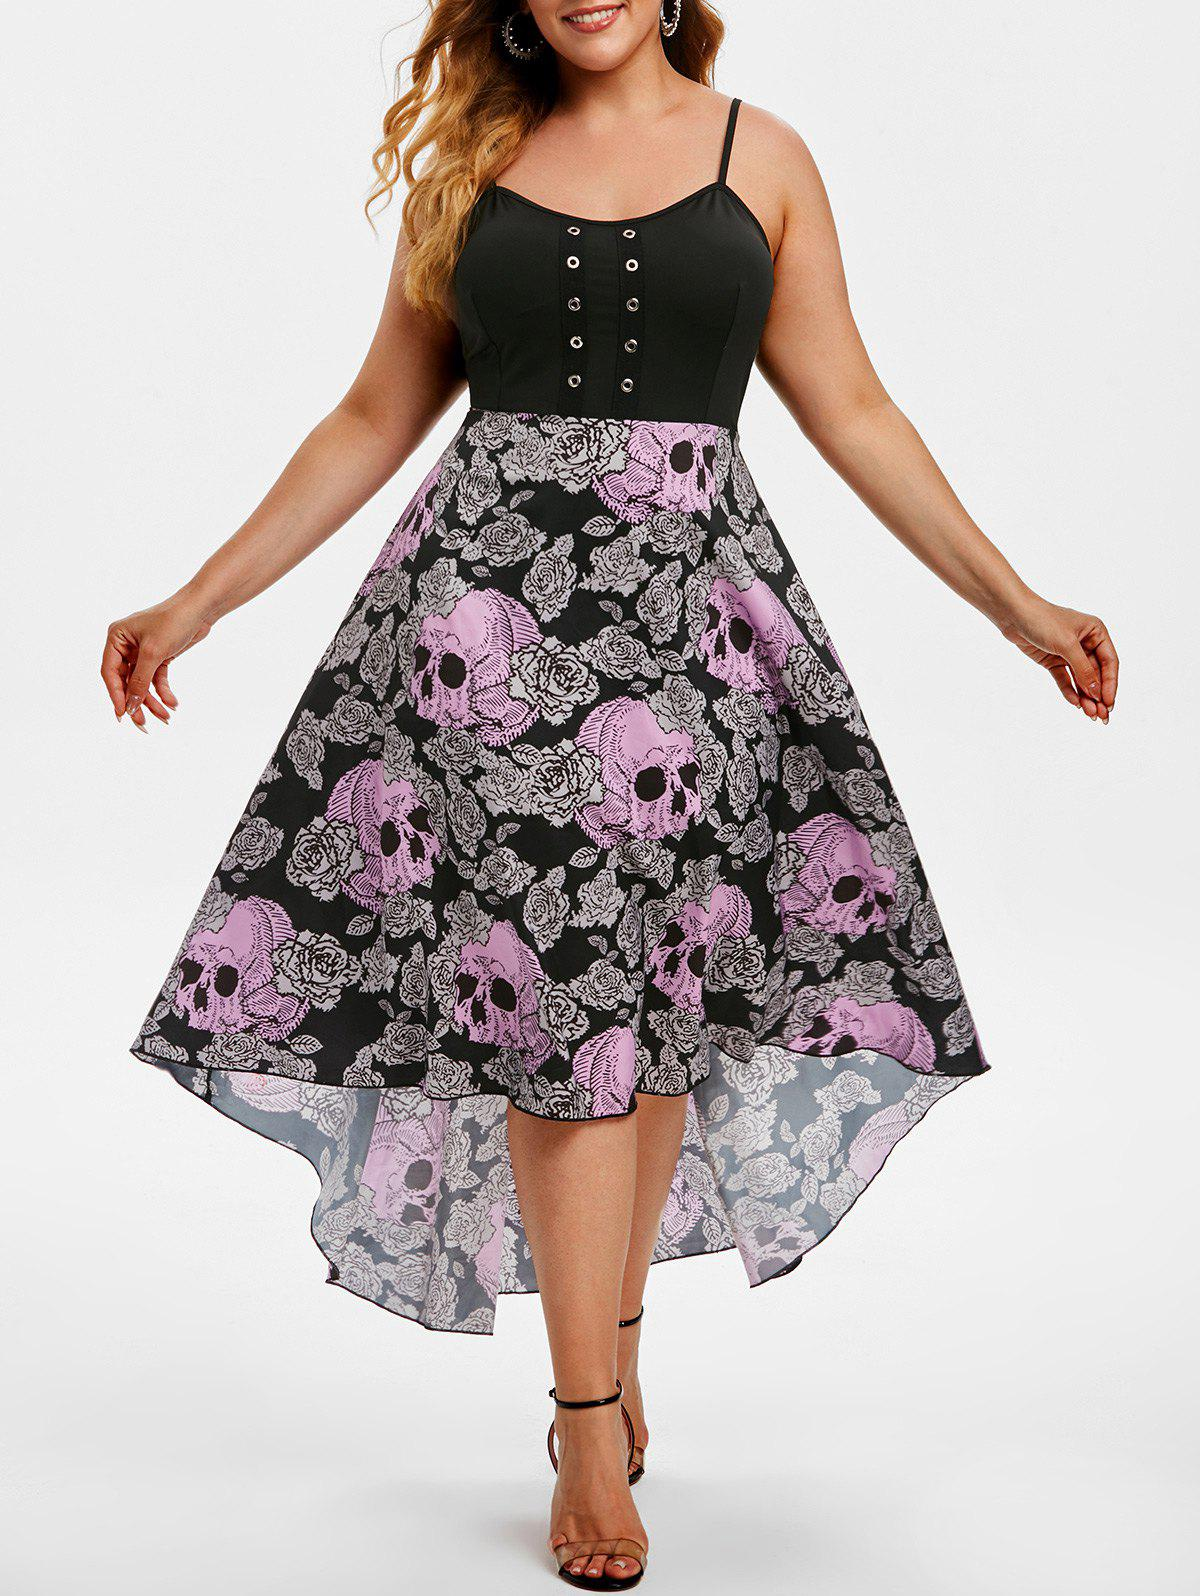 Grommet Floral Skull High Low Halloween Plus Size Dress - PURPLE 5X